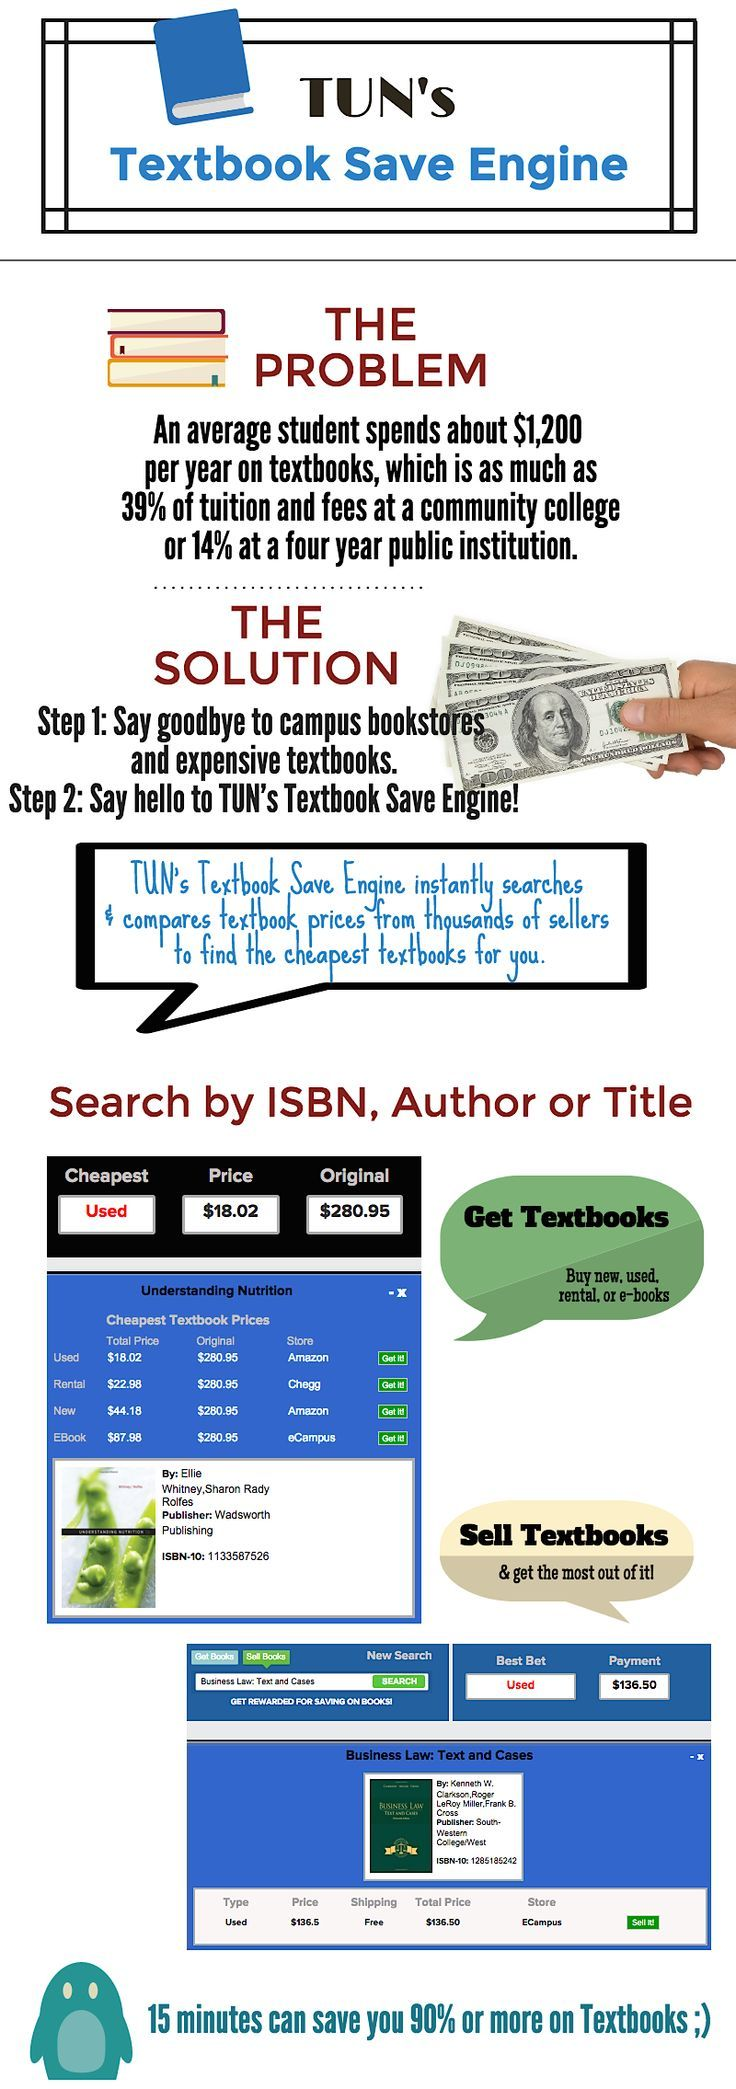 See how you can actually make a profit buying & selling textbooks using TUN's Textbook Save Engine: http://blog.tun.com/2015/12/17/the-secret-to-making-a-profit-selling-back-your-textbooks-seriously/